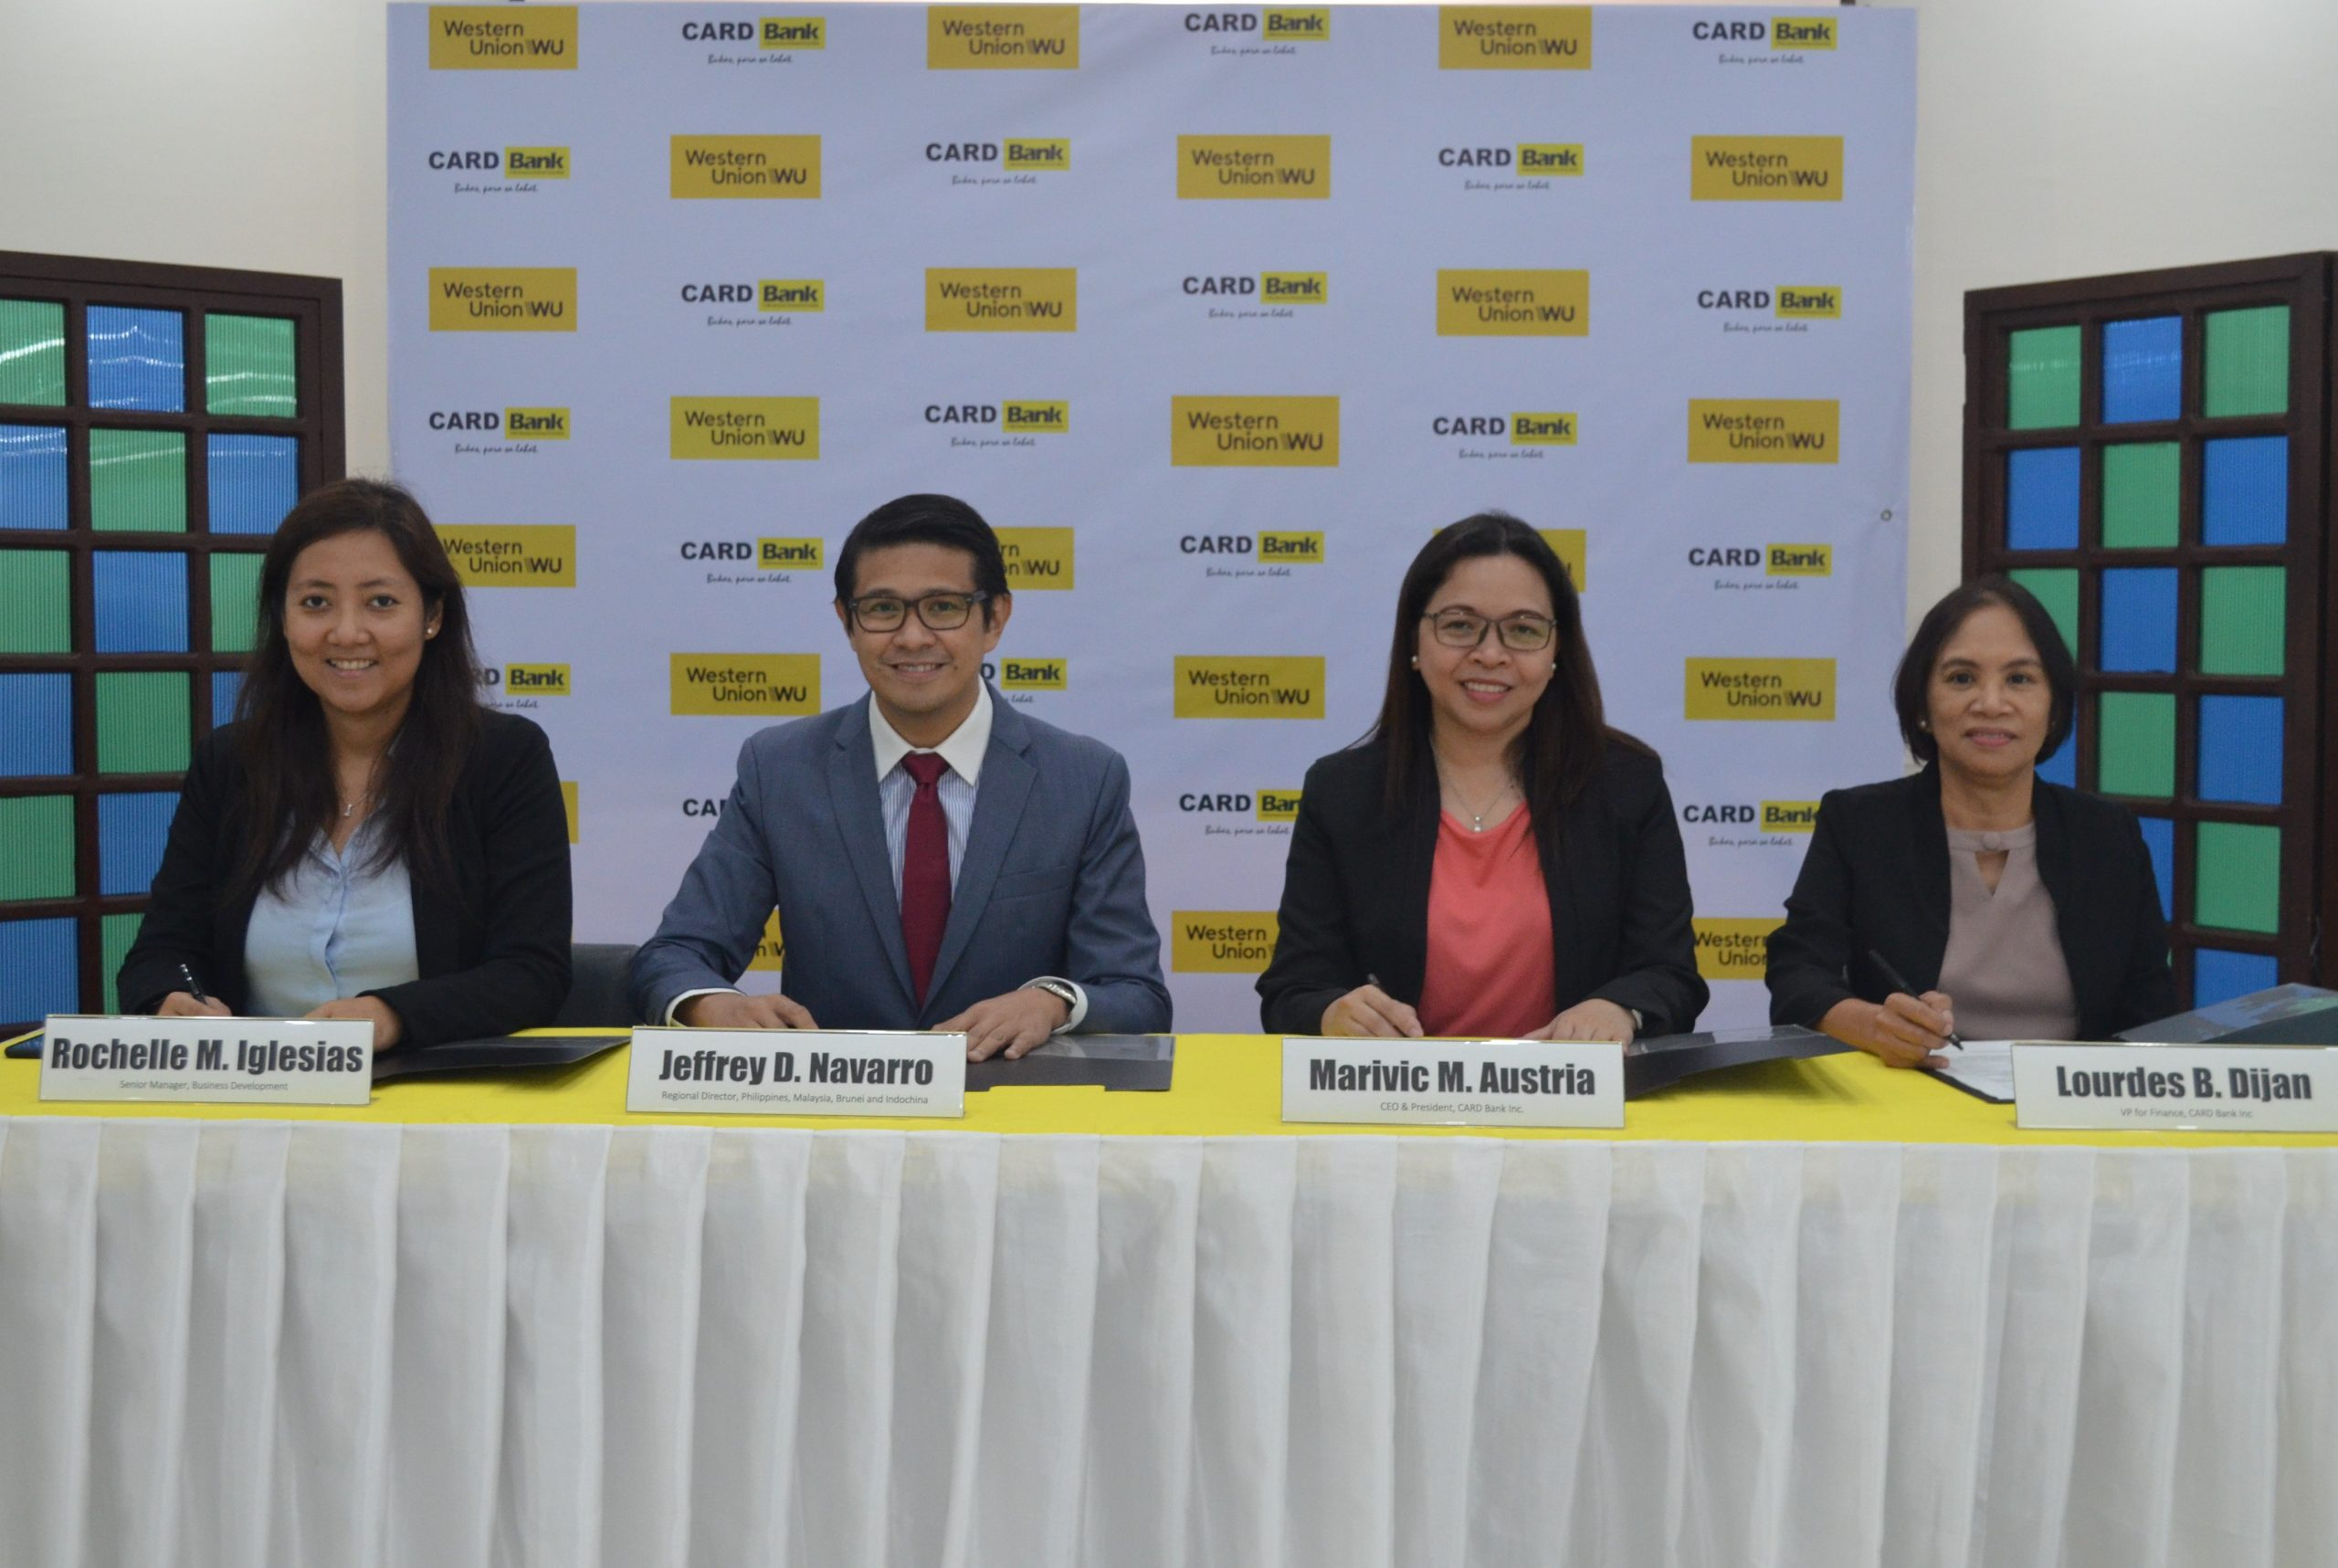 CARD Bank partners with Western Union to widen international-domestic remittance service.